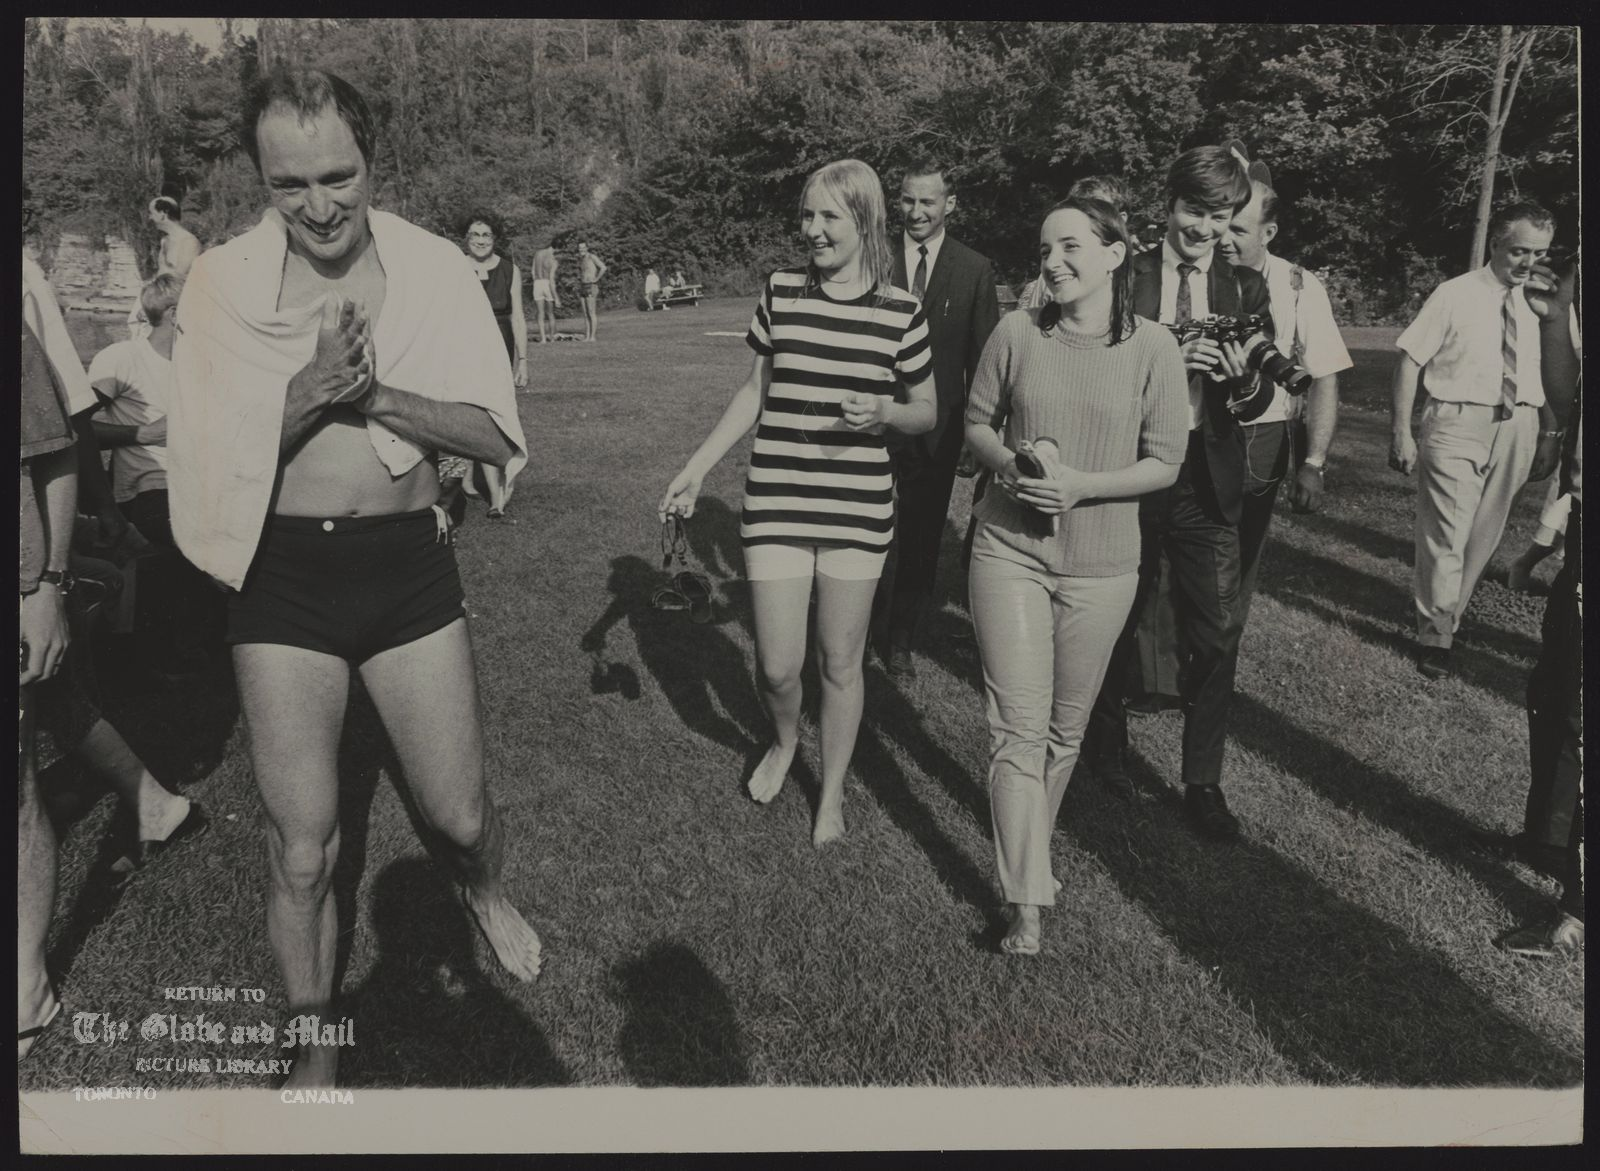 Pierre Elliott TRUDEAU Quebec. Politician Emerging from swim, Prime Minister Trudeau walks with his Stratford friends Ann and Mary, followed by newsman and photographers. [Ann Hayes, 15, striped sweater, and Mary Pinkney,15, solid-colour sweater]